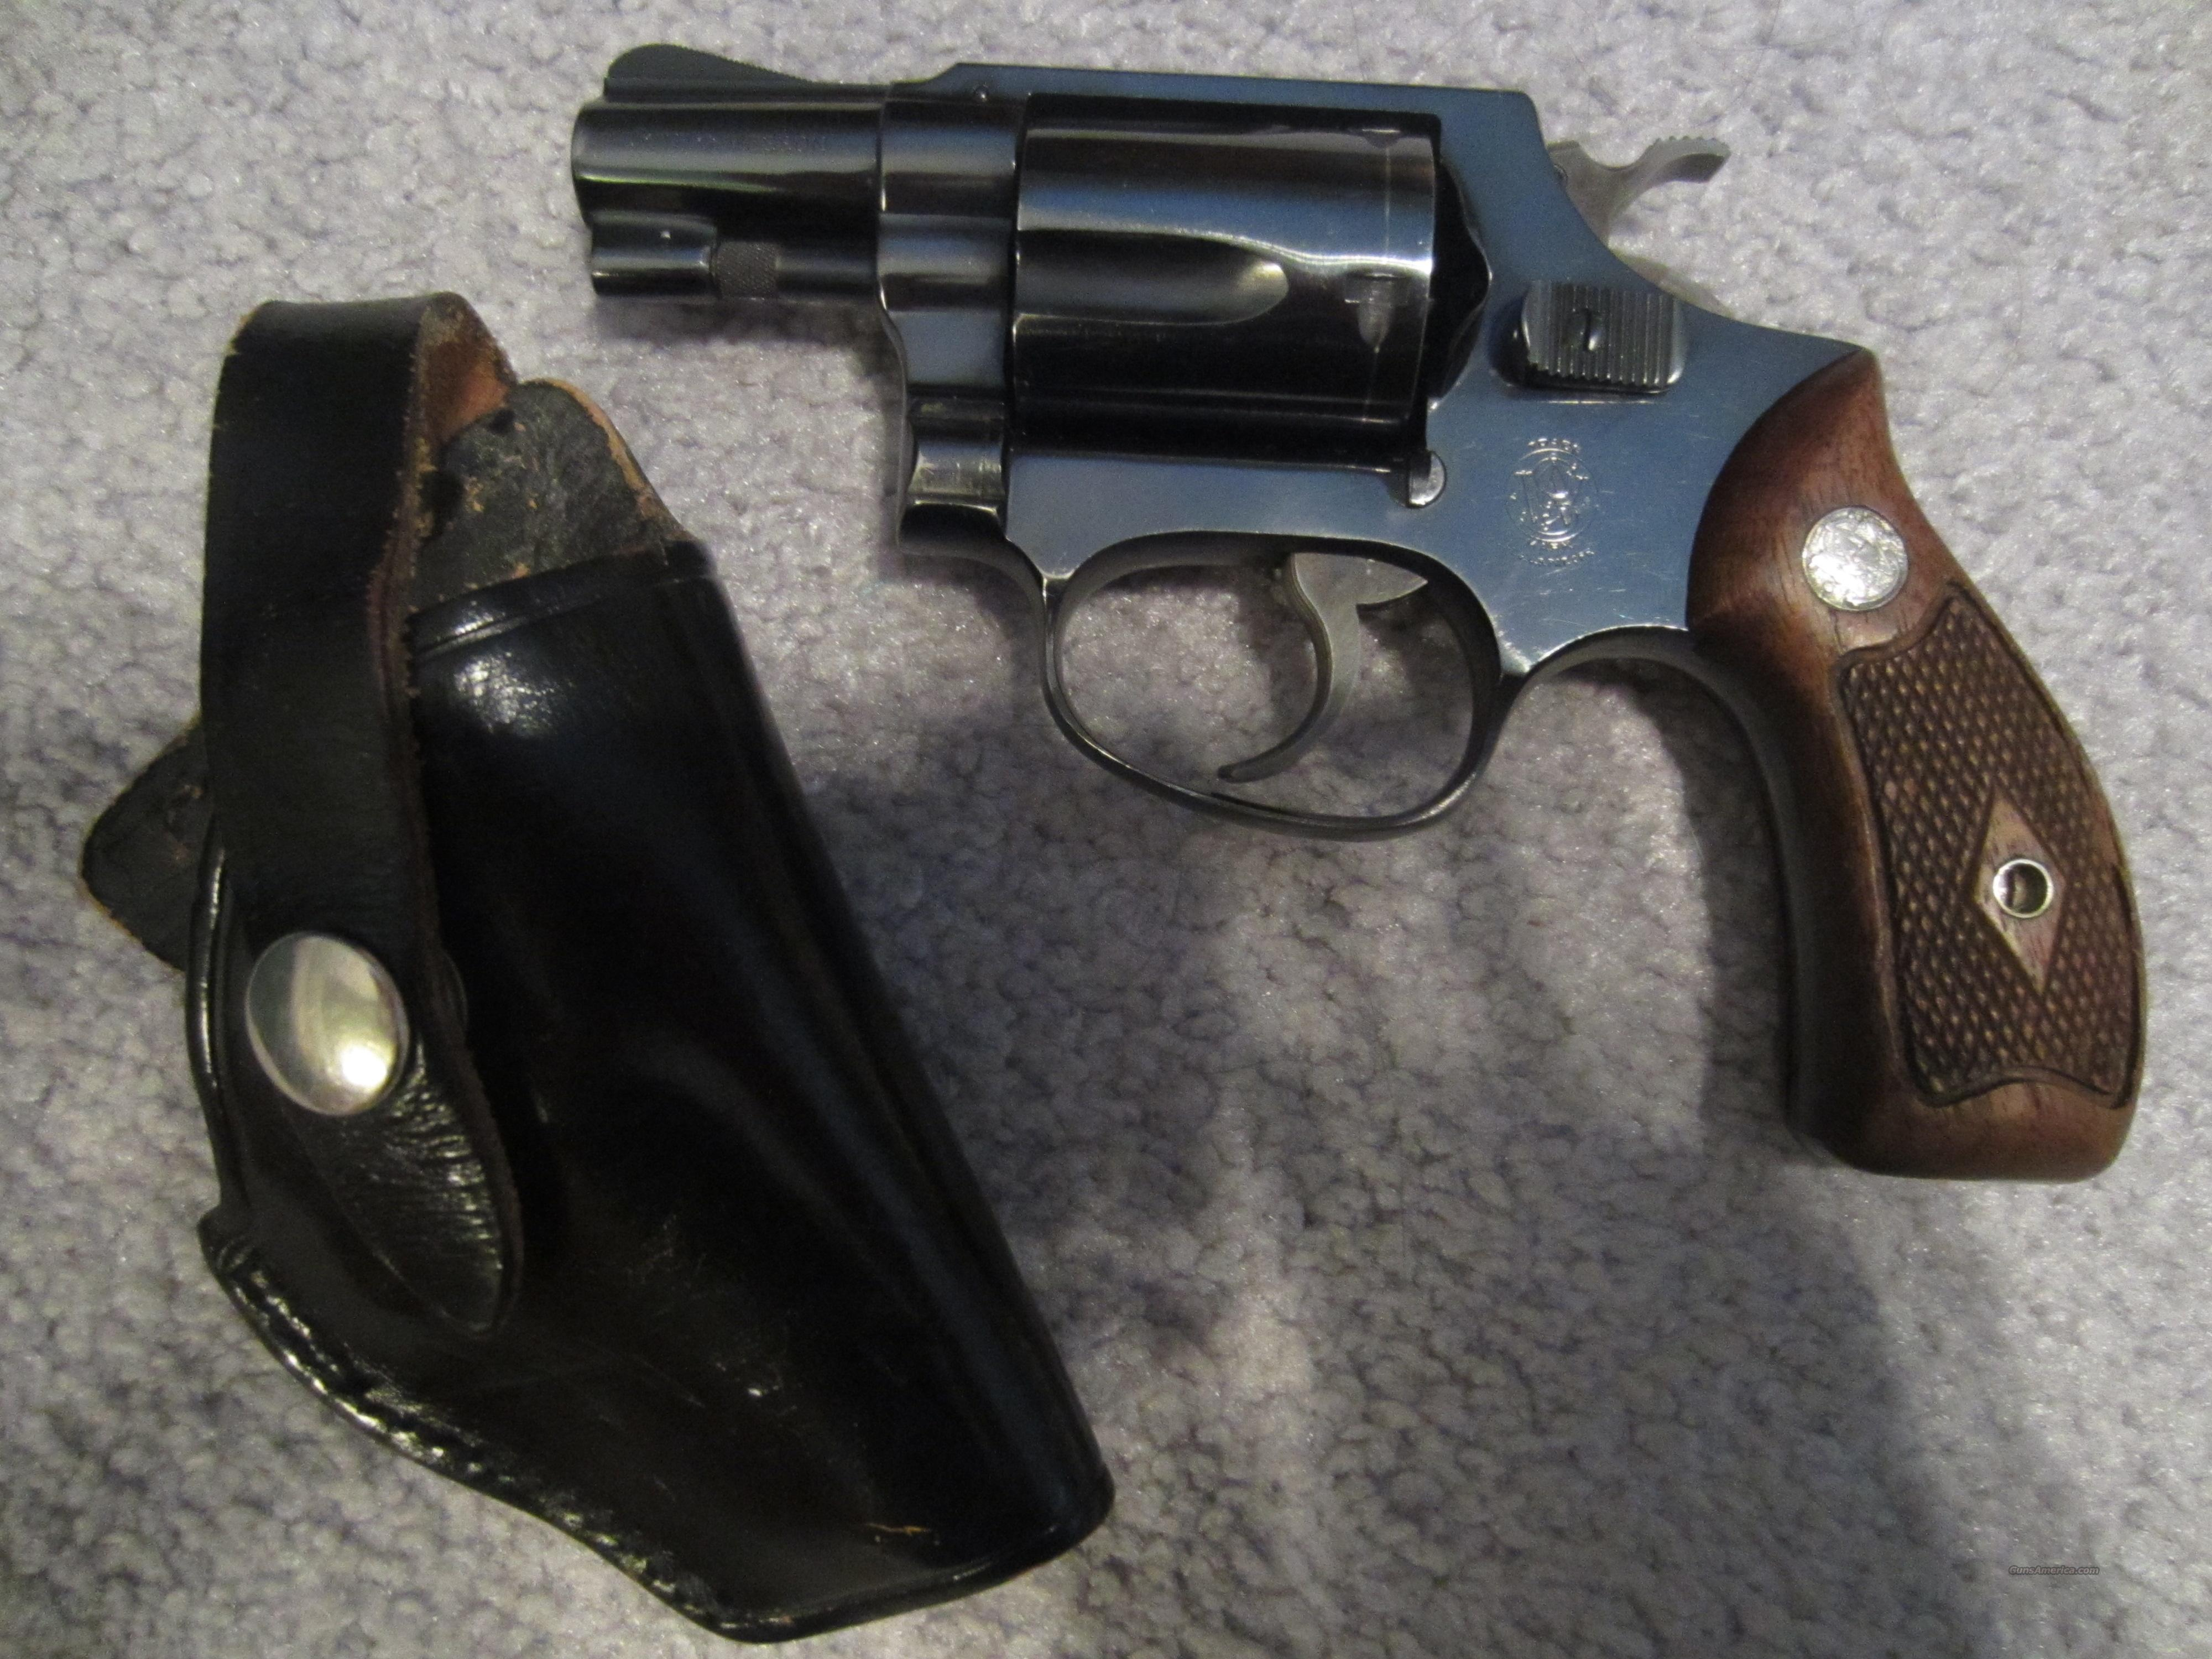 Smith & Wesson, Model 36, Chief's Special, .38 Special  5-Shot Revolver  Guns > Pistols > Smith & Wesson Revolvers > Pocket Pistols